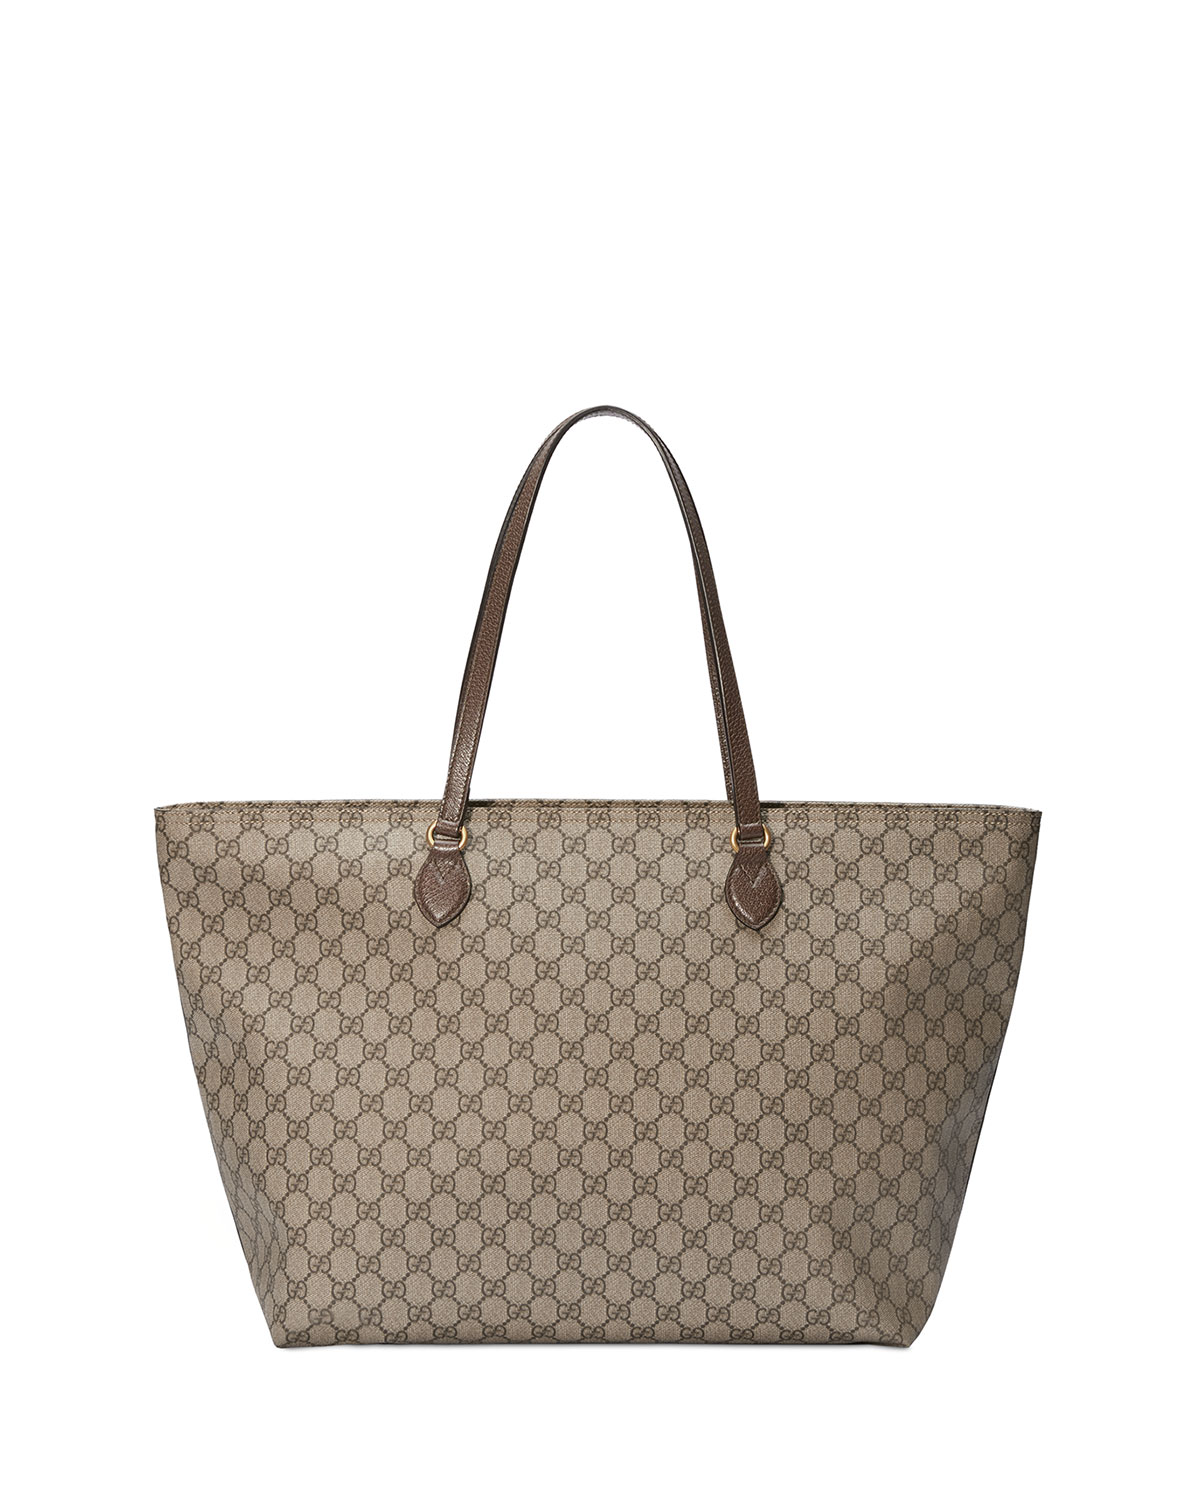 Gucci Ophidia Medium Soft GG Supreme Canvas Tote Bag  5a549ba06bb16